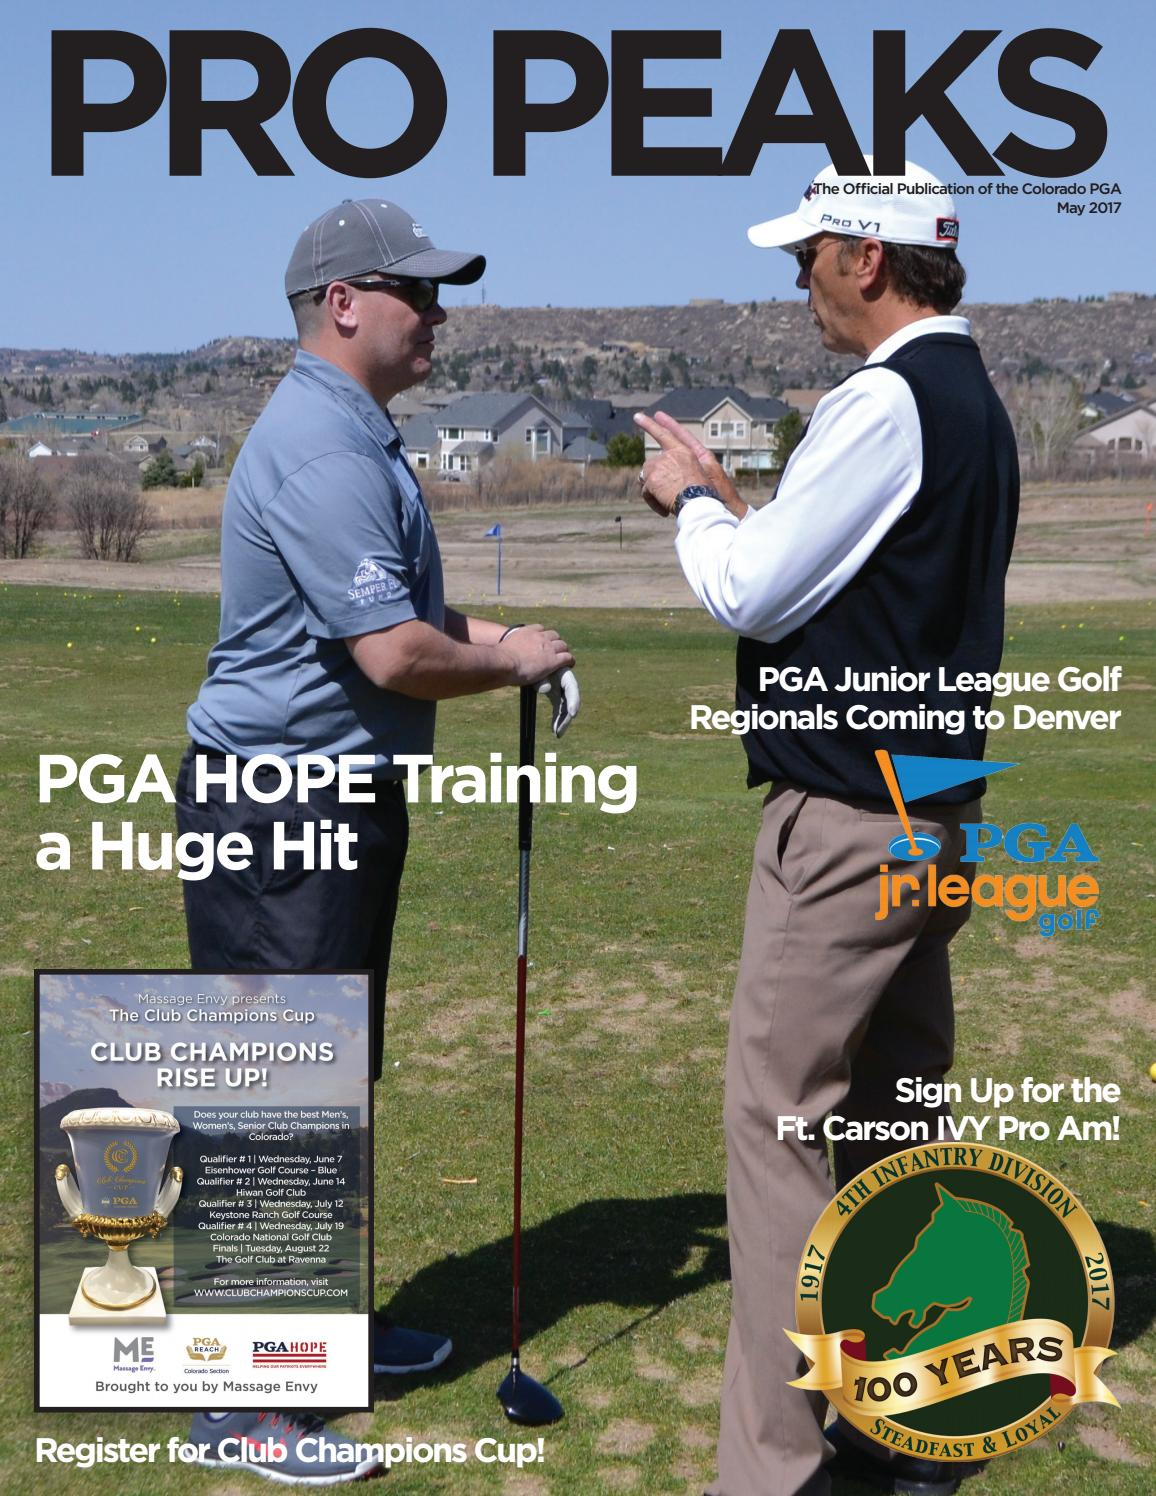 colorado pga may 2017 pro peaks digital magazine by colorado pga